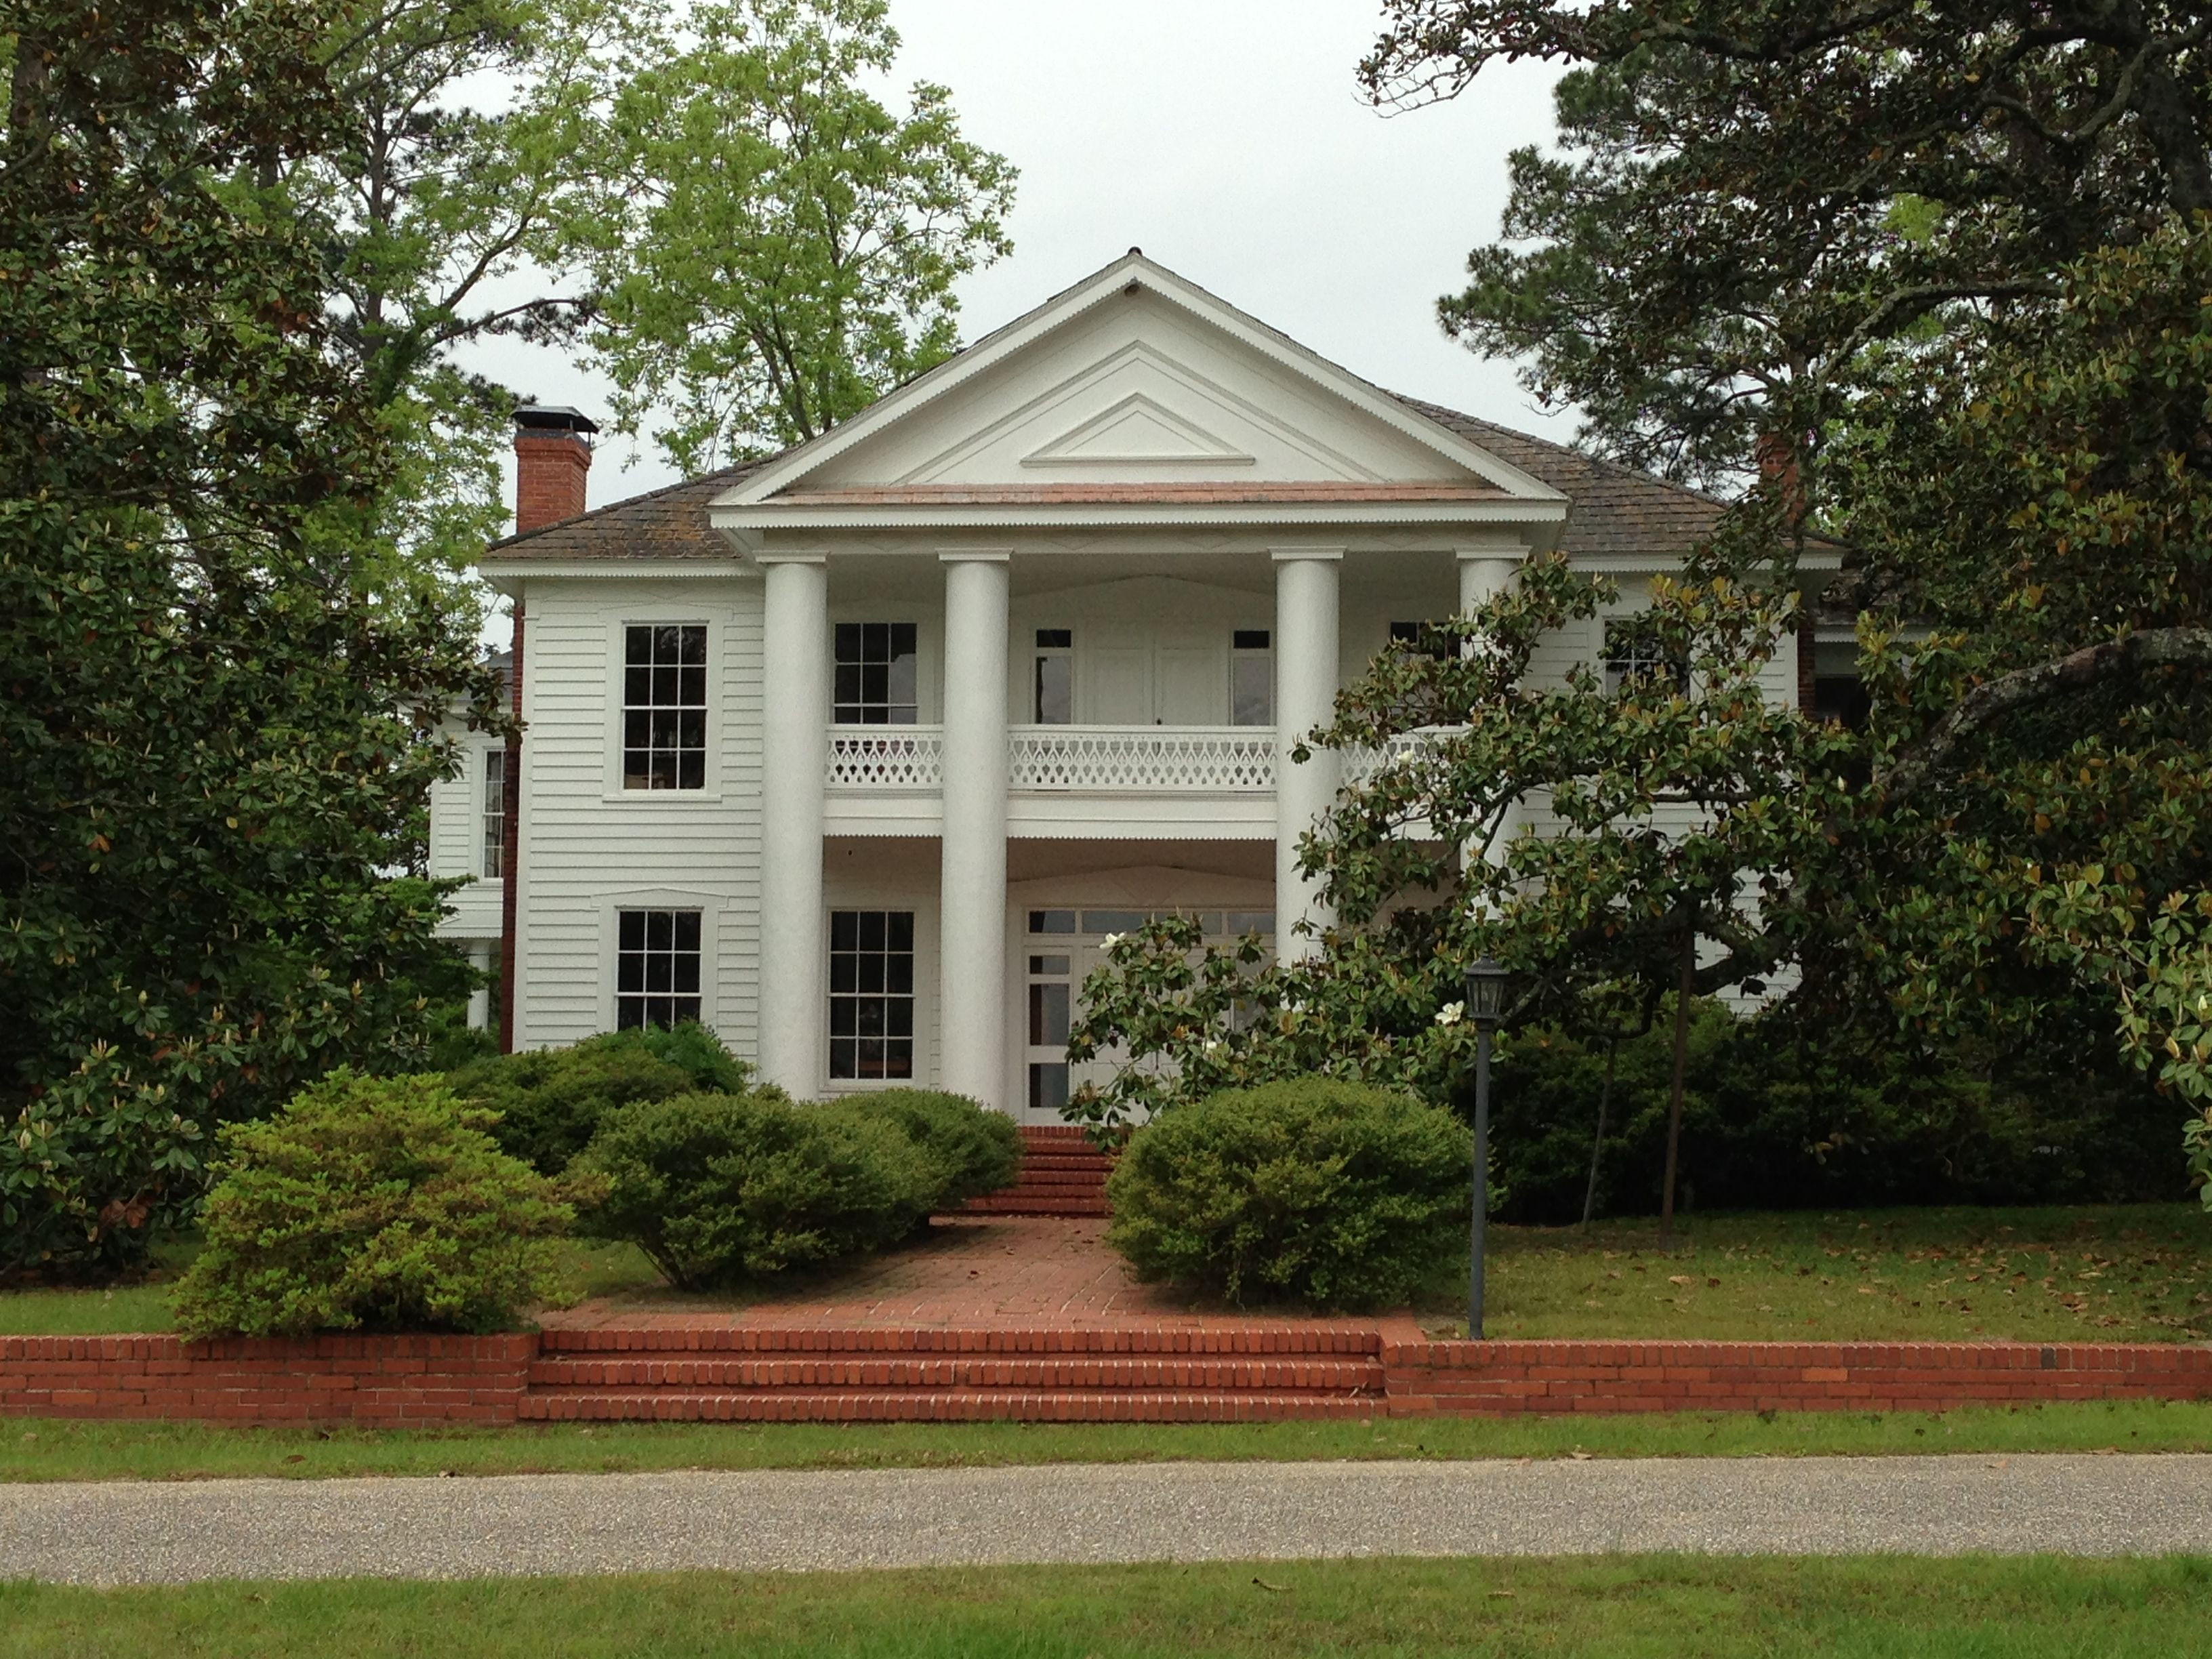 Magnolia villa the russell harper house monroeville for Lee homes